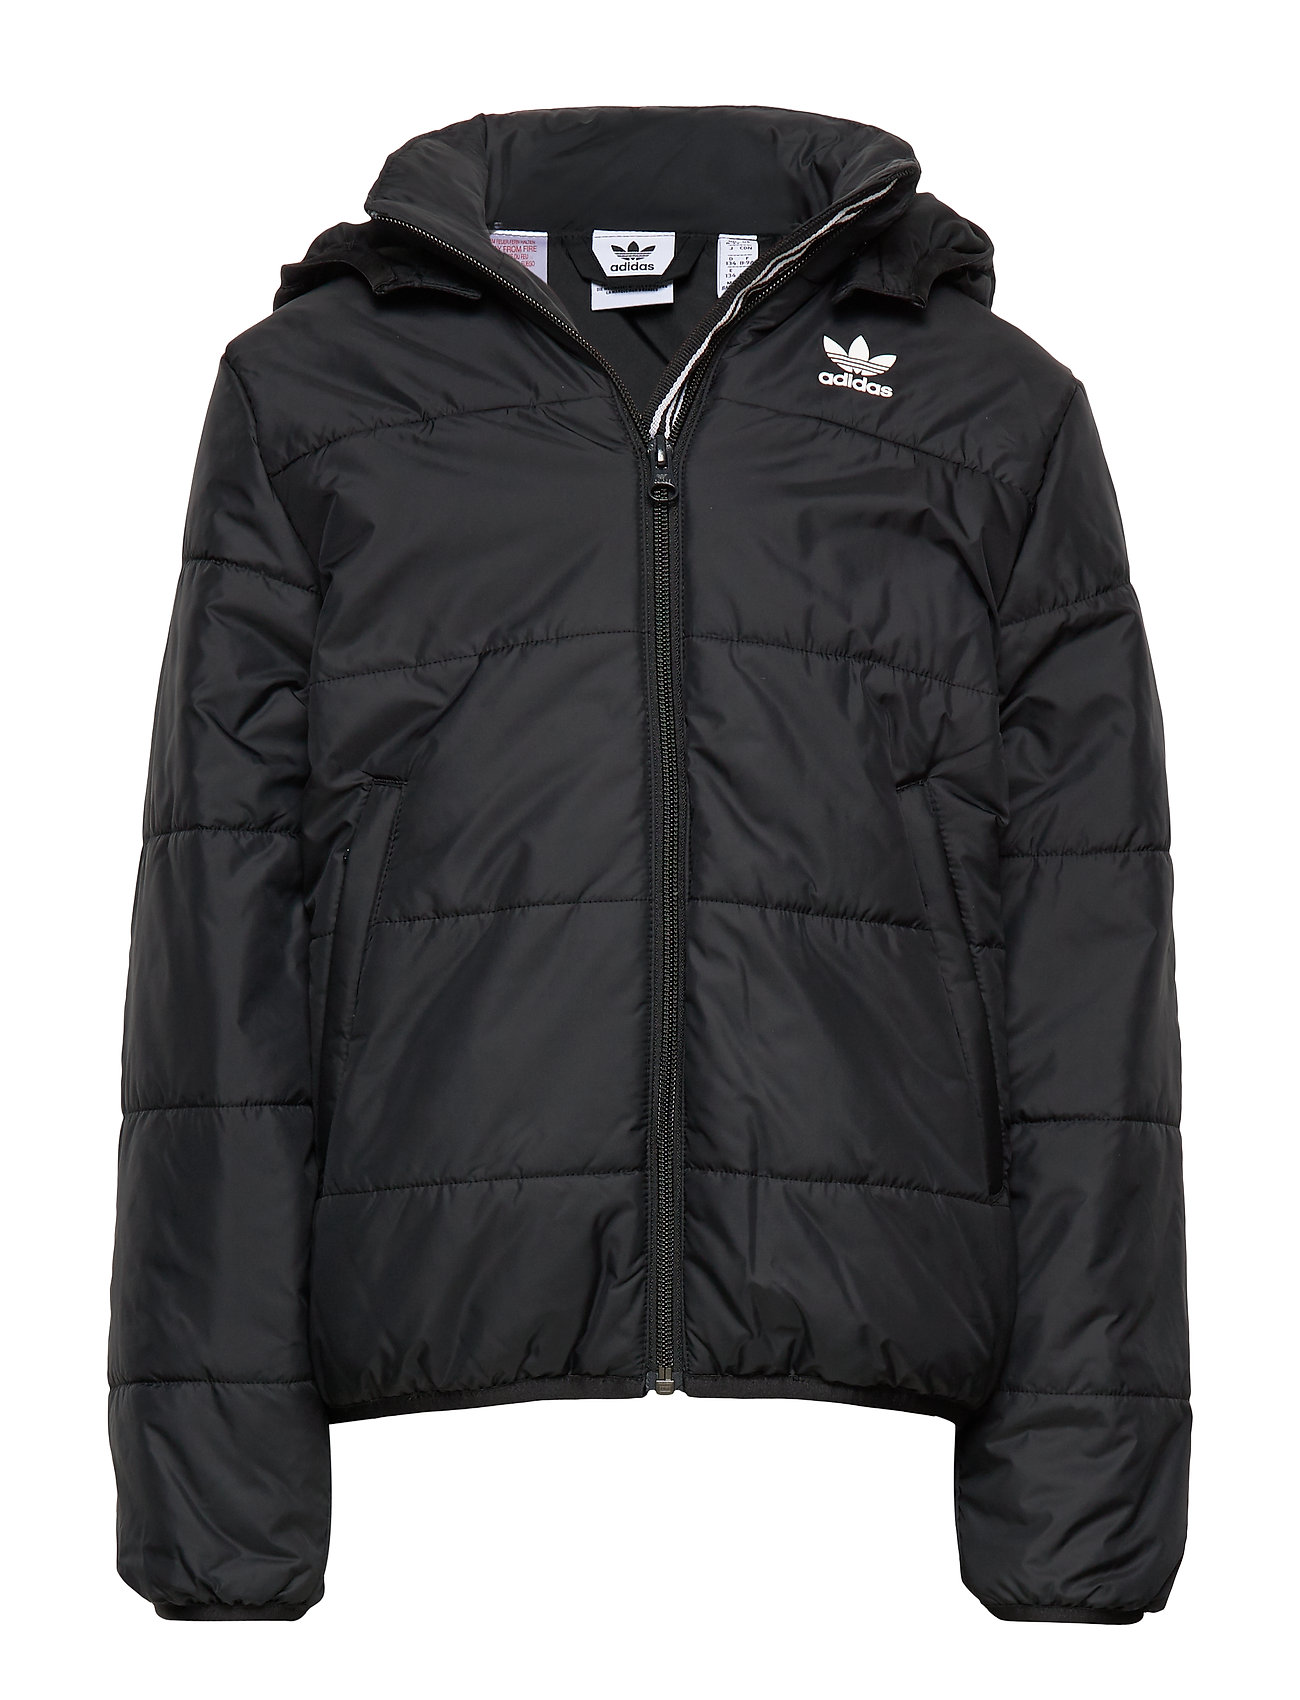 adidas Originals JACKET - BLACK/WHIREF